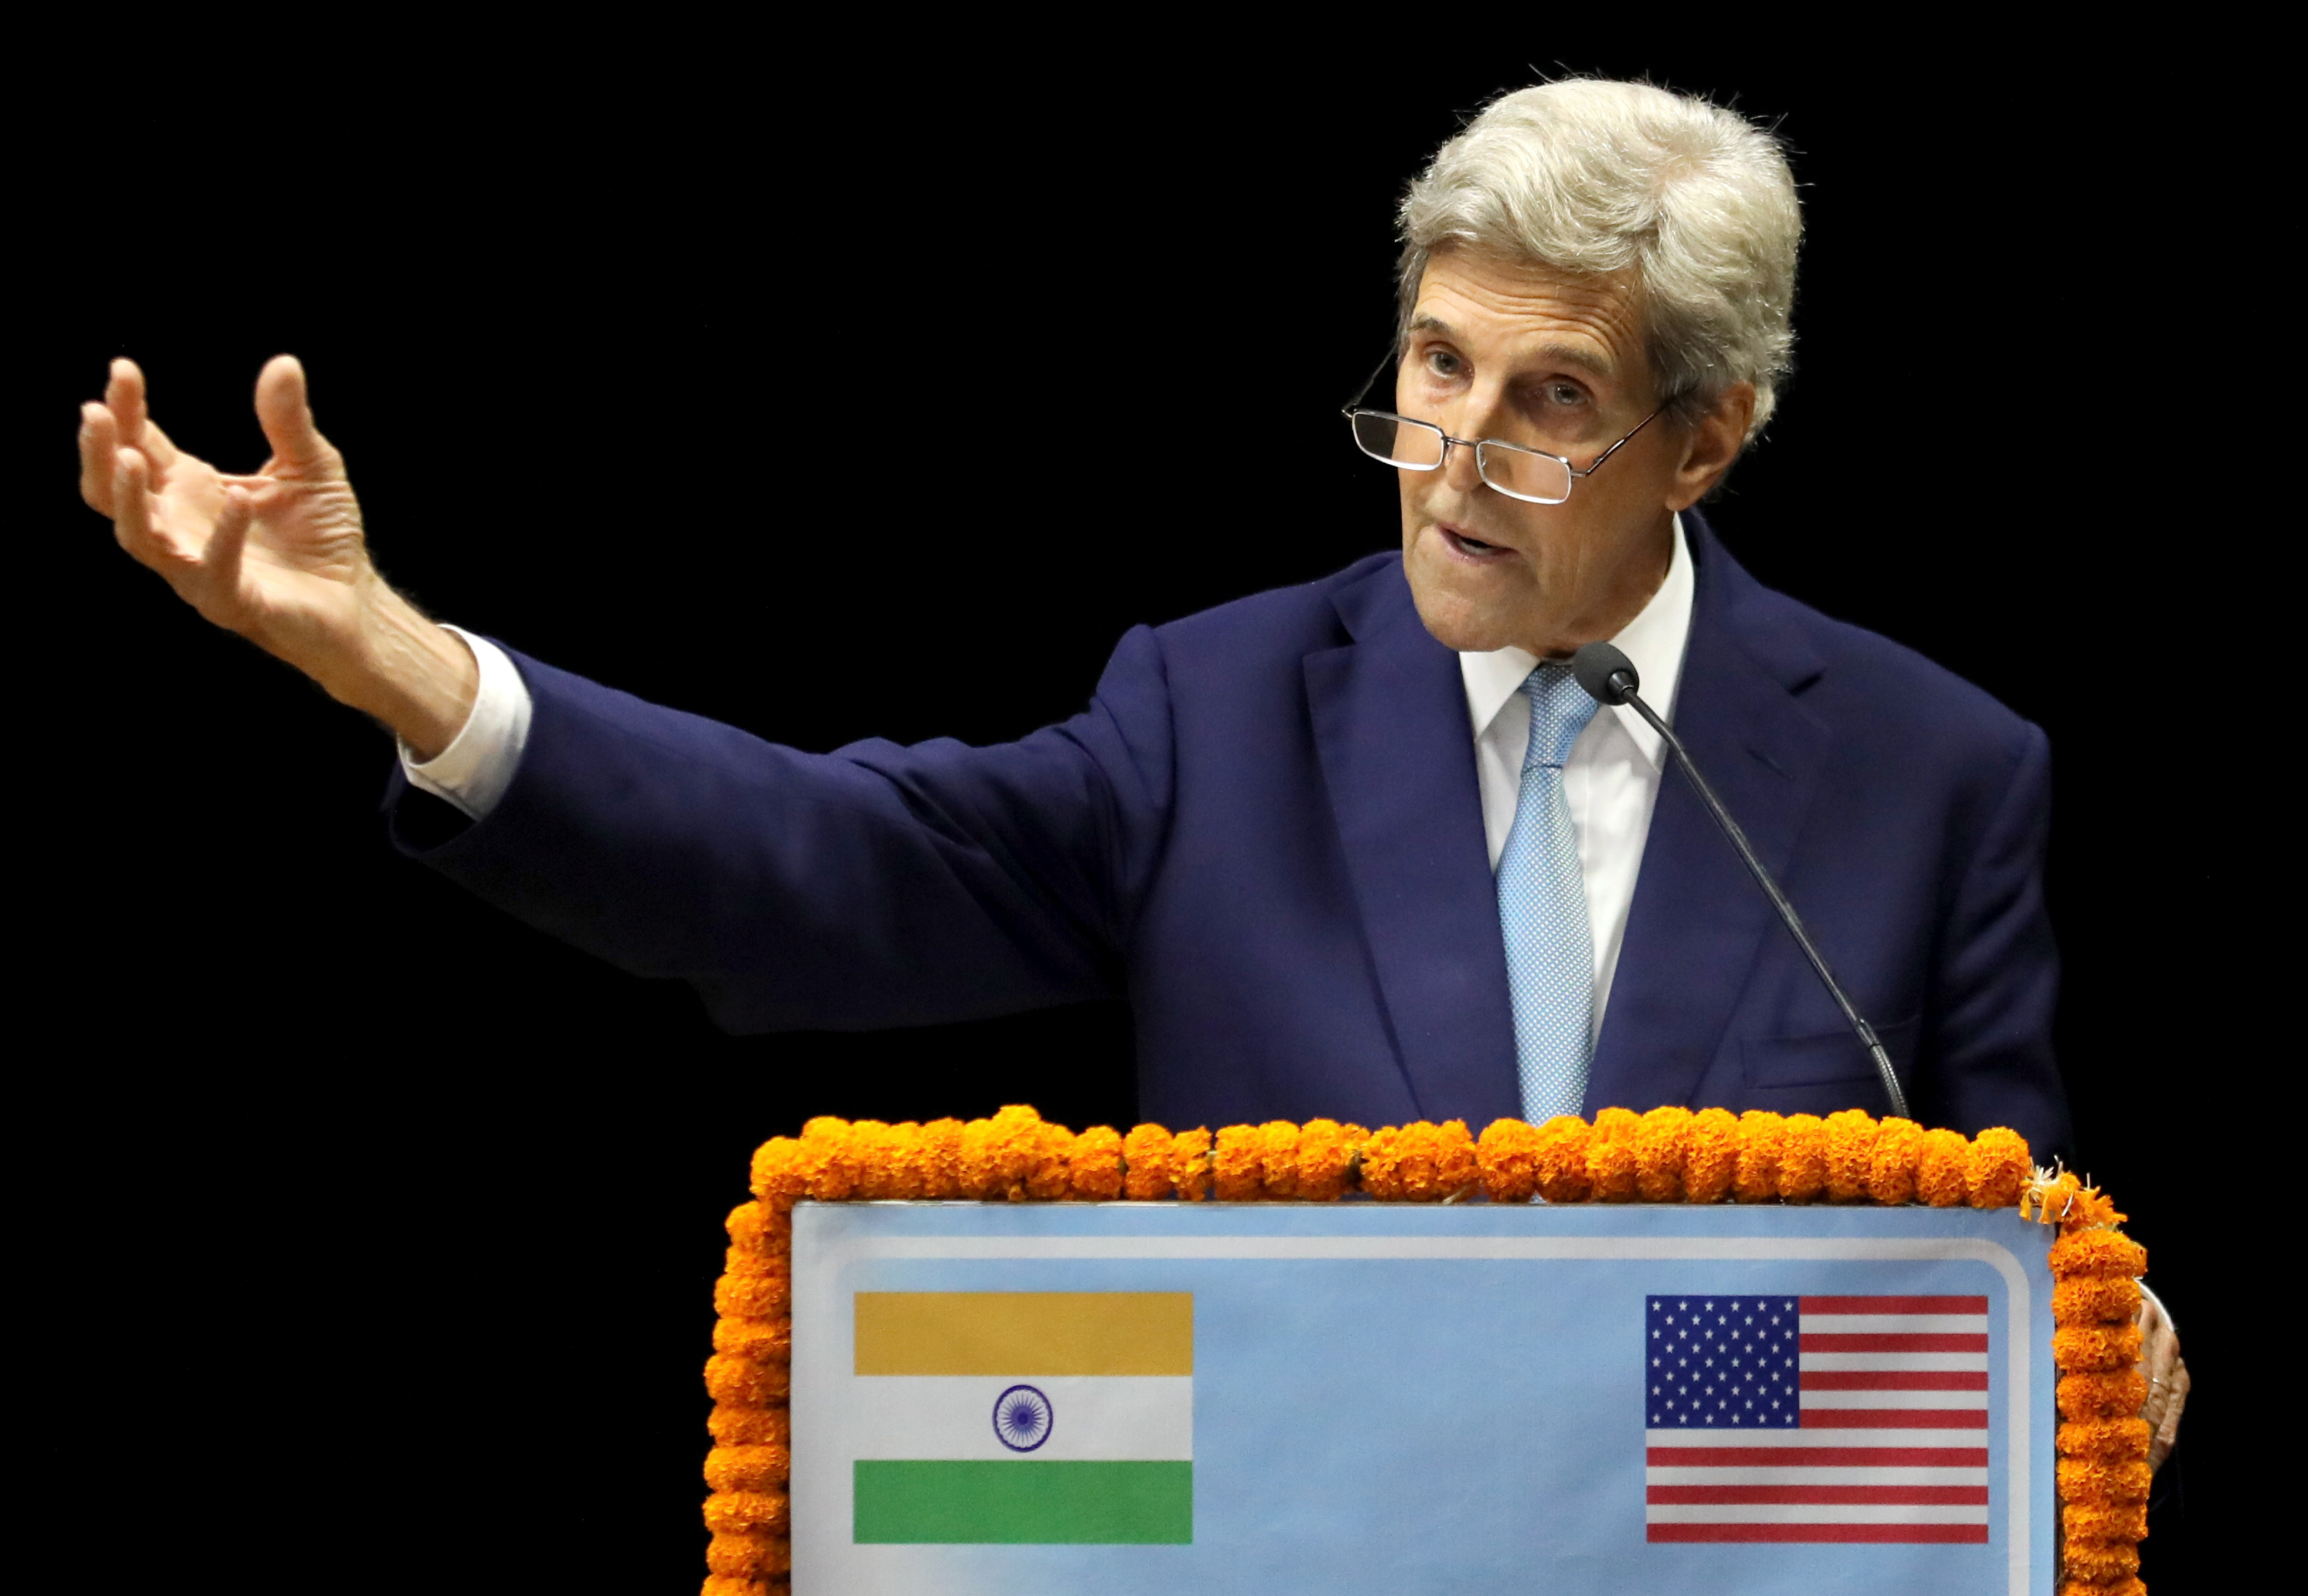 United States special presidential envoy for climate John Kerry speaks as he launches the Climate Action and Finance Mobilisation Dialogue (CAFMD) under India-US Climate and Clean Energy Agenda 2030 Partnership, in New Delhi, India, September 13, 2021. REUTERS/Anushree Fadnavis